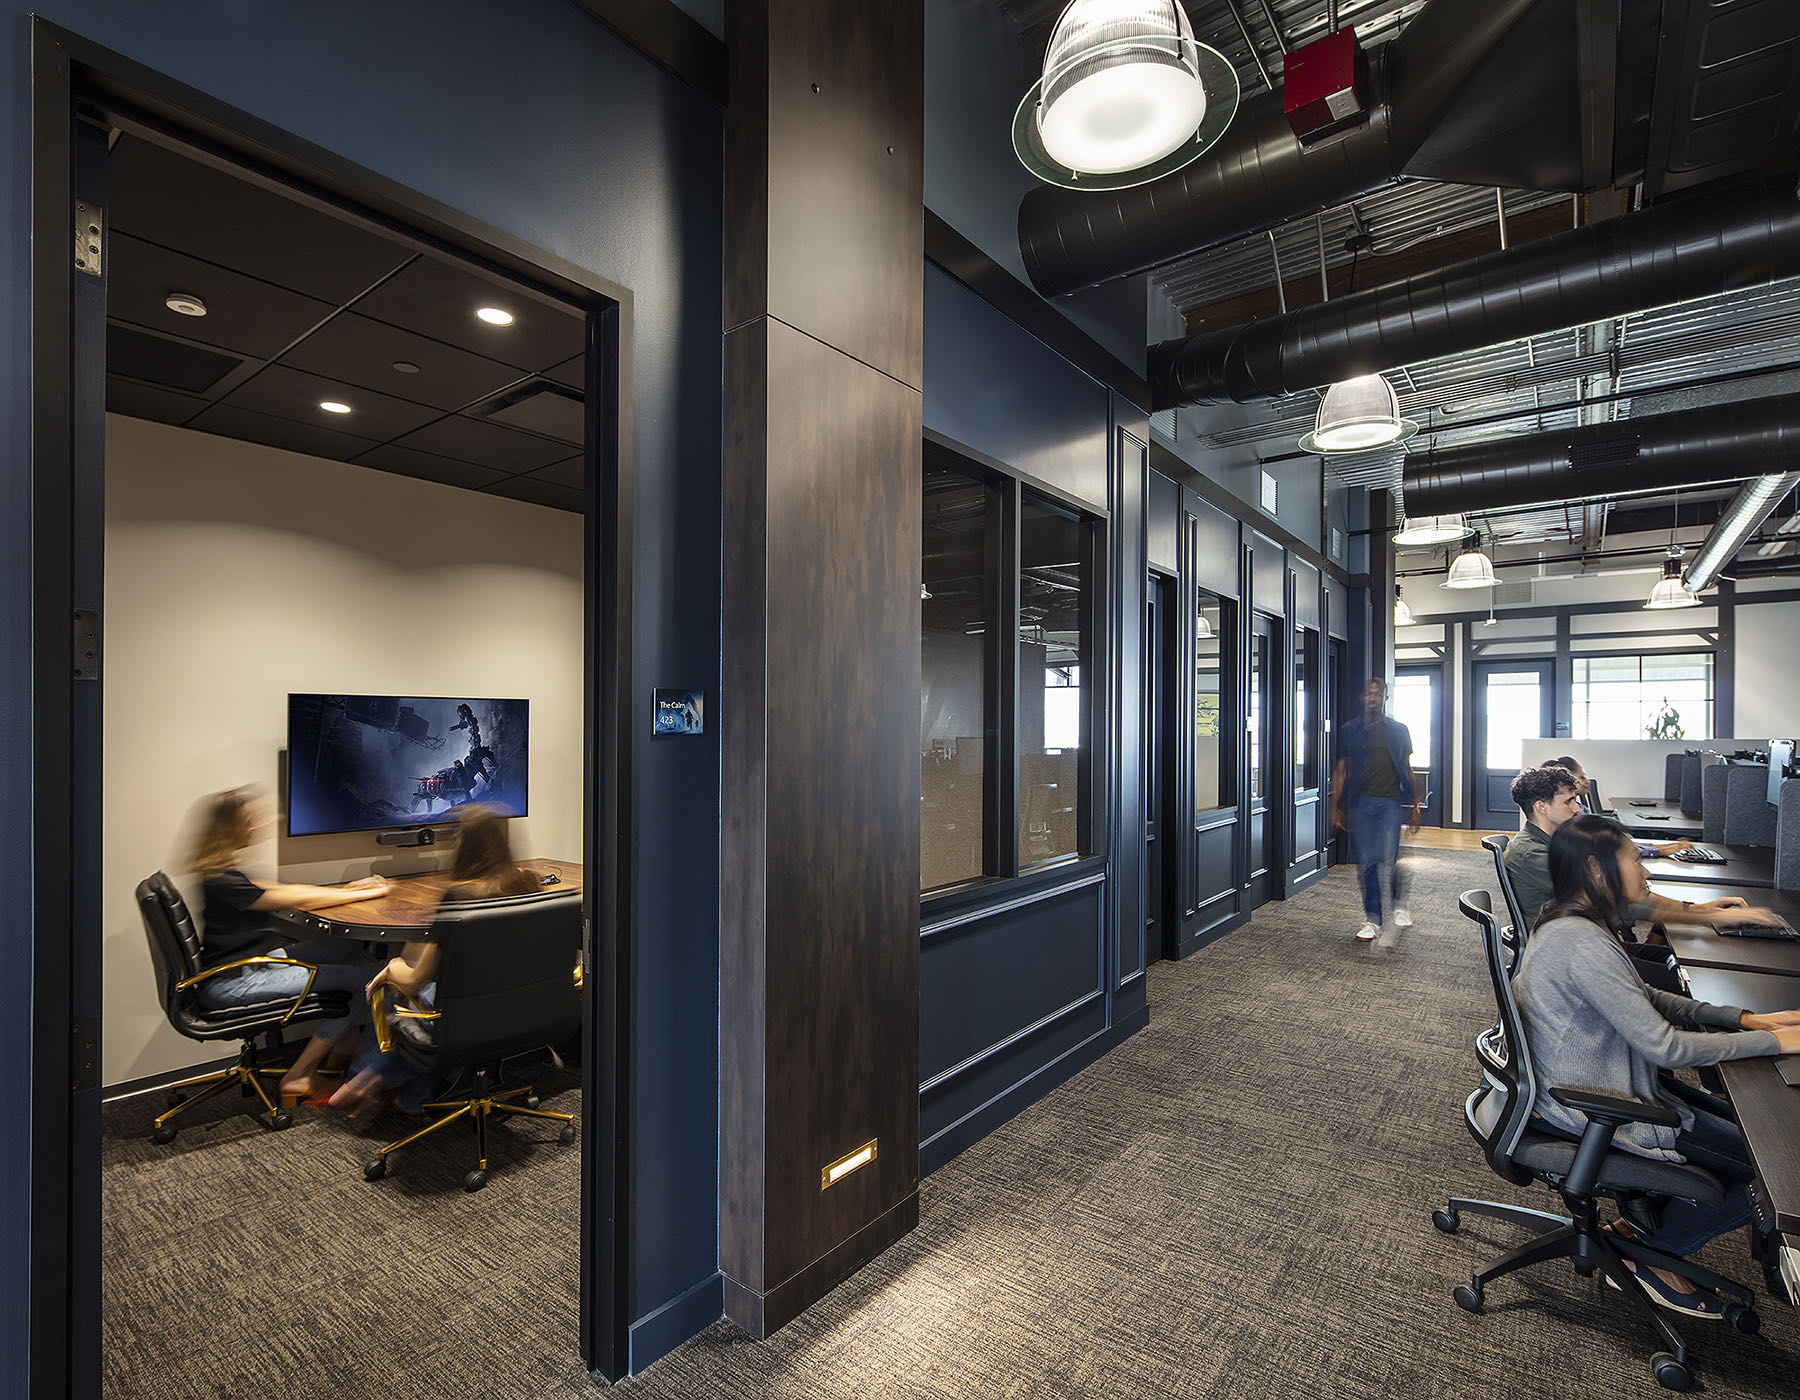 videogaming-company-office-13